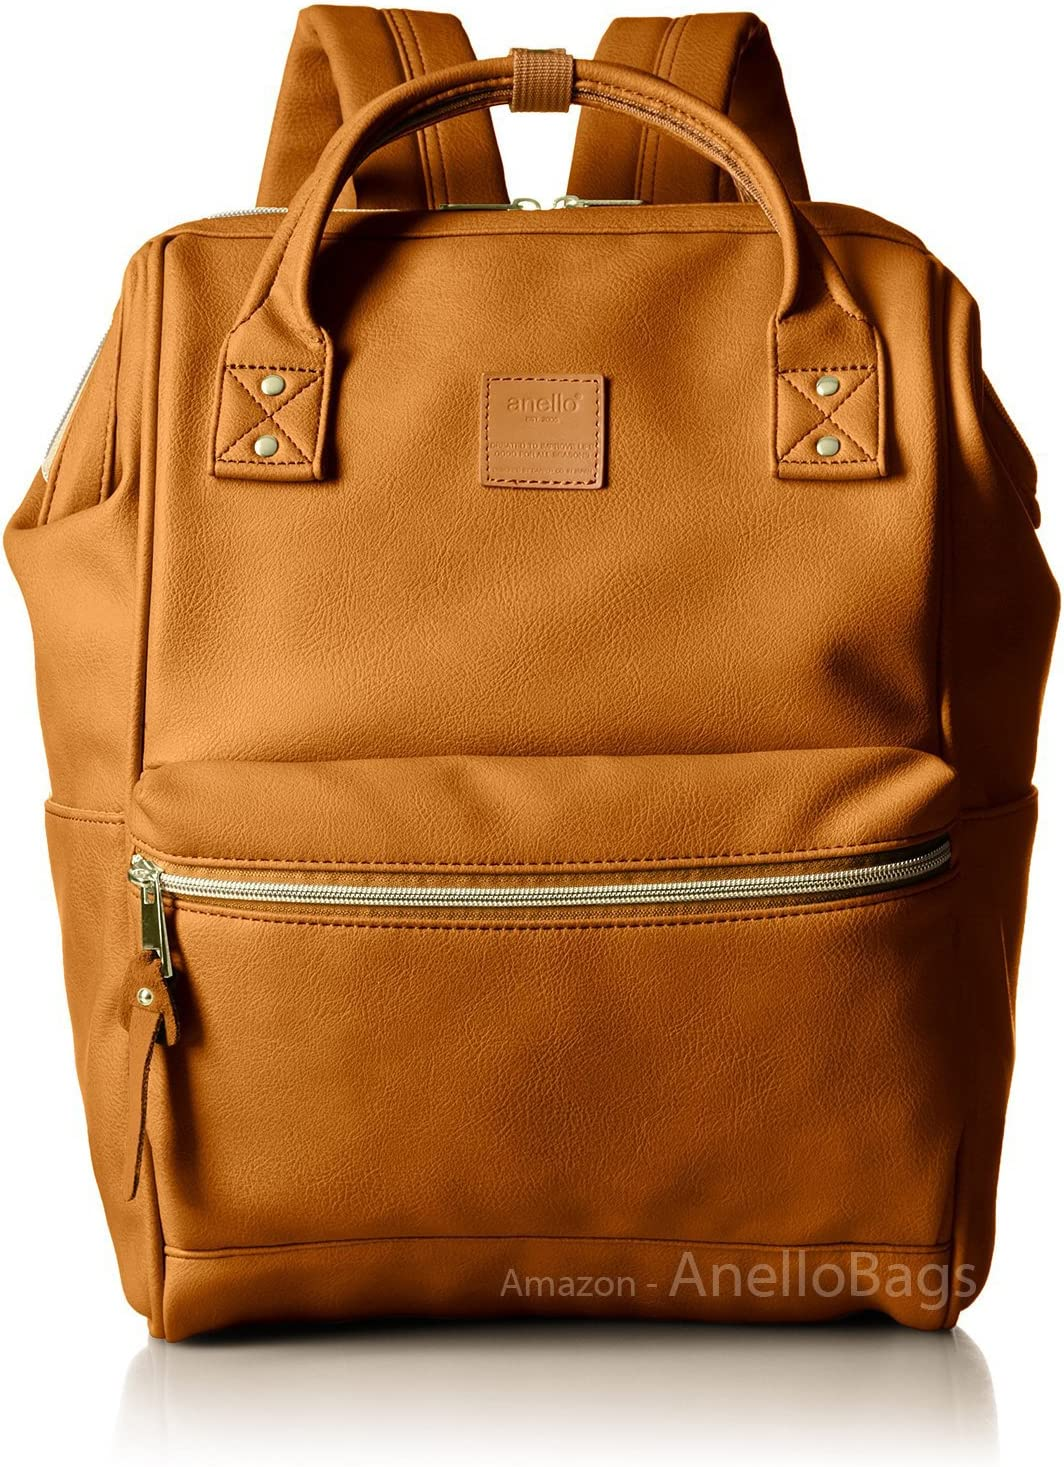 020444442X Japan Anello Backpack Unisex CAMEL BEIGE LARGE PU LEATHER Rucksack Bag Campus 81bjtdNjs4L.SL1500_